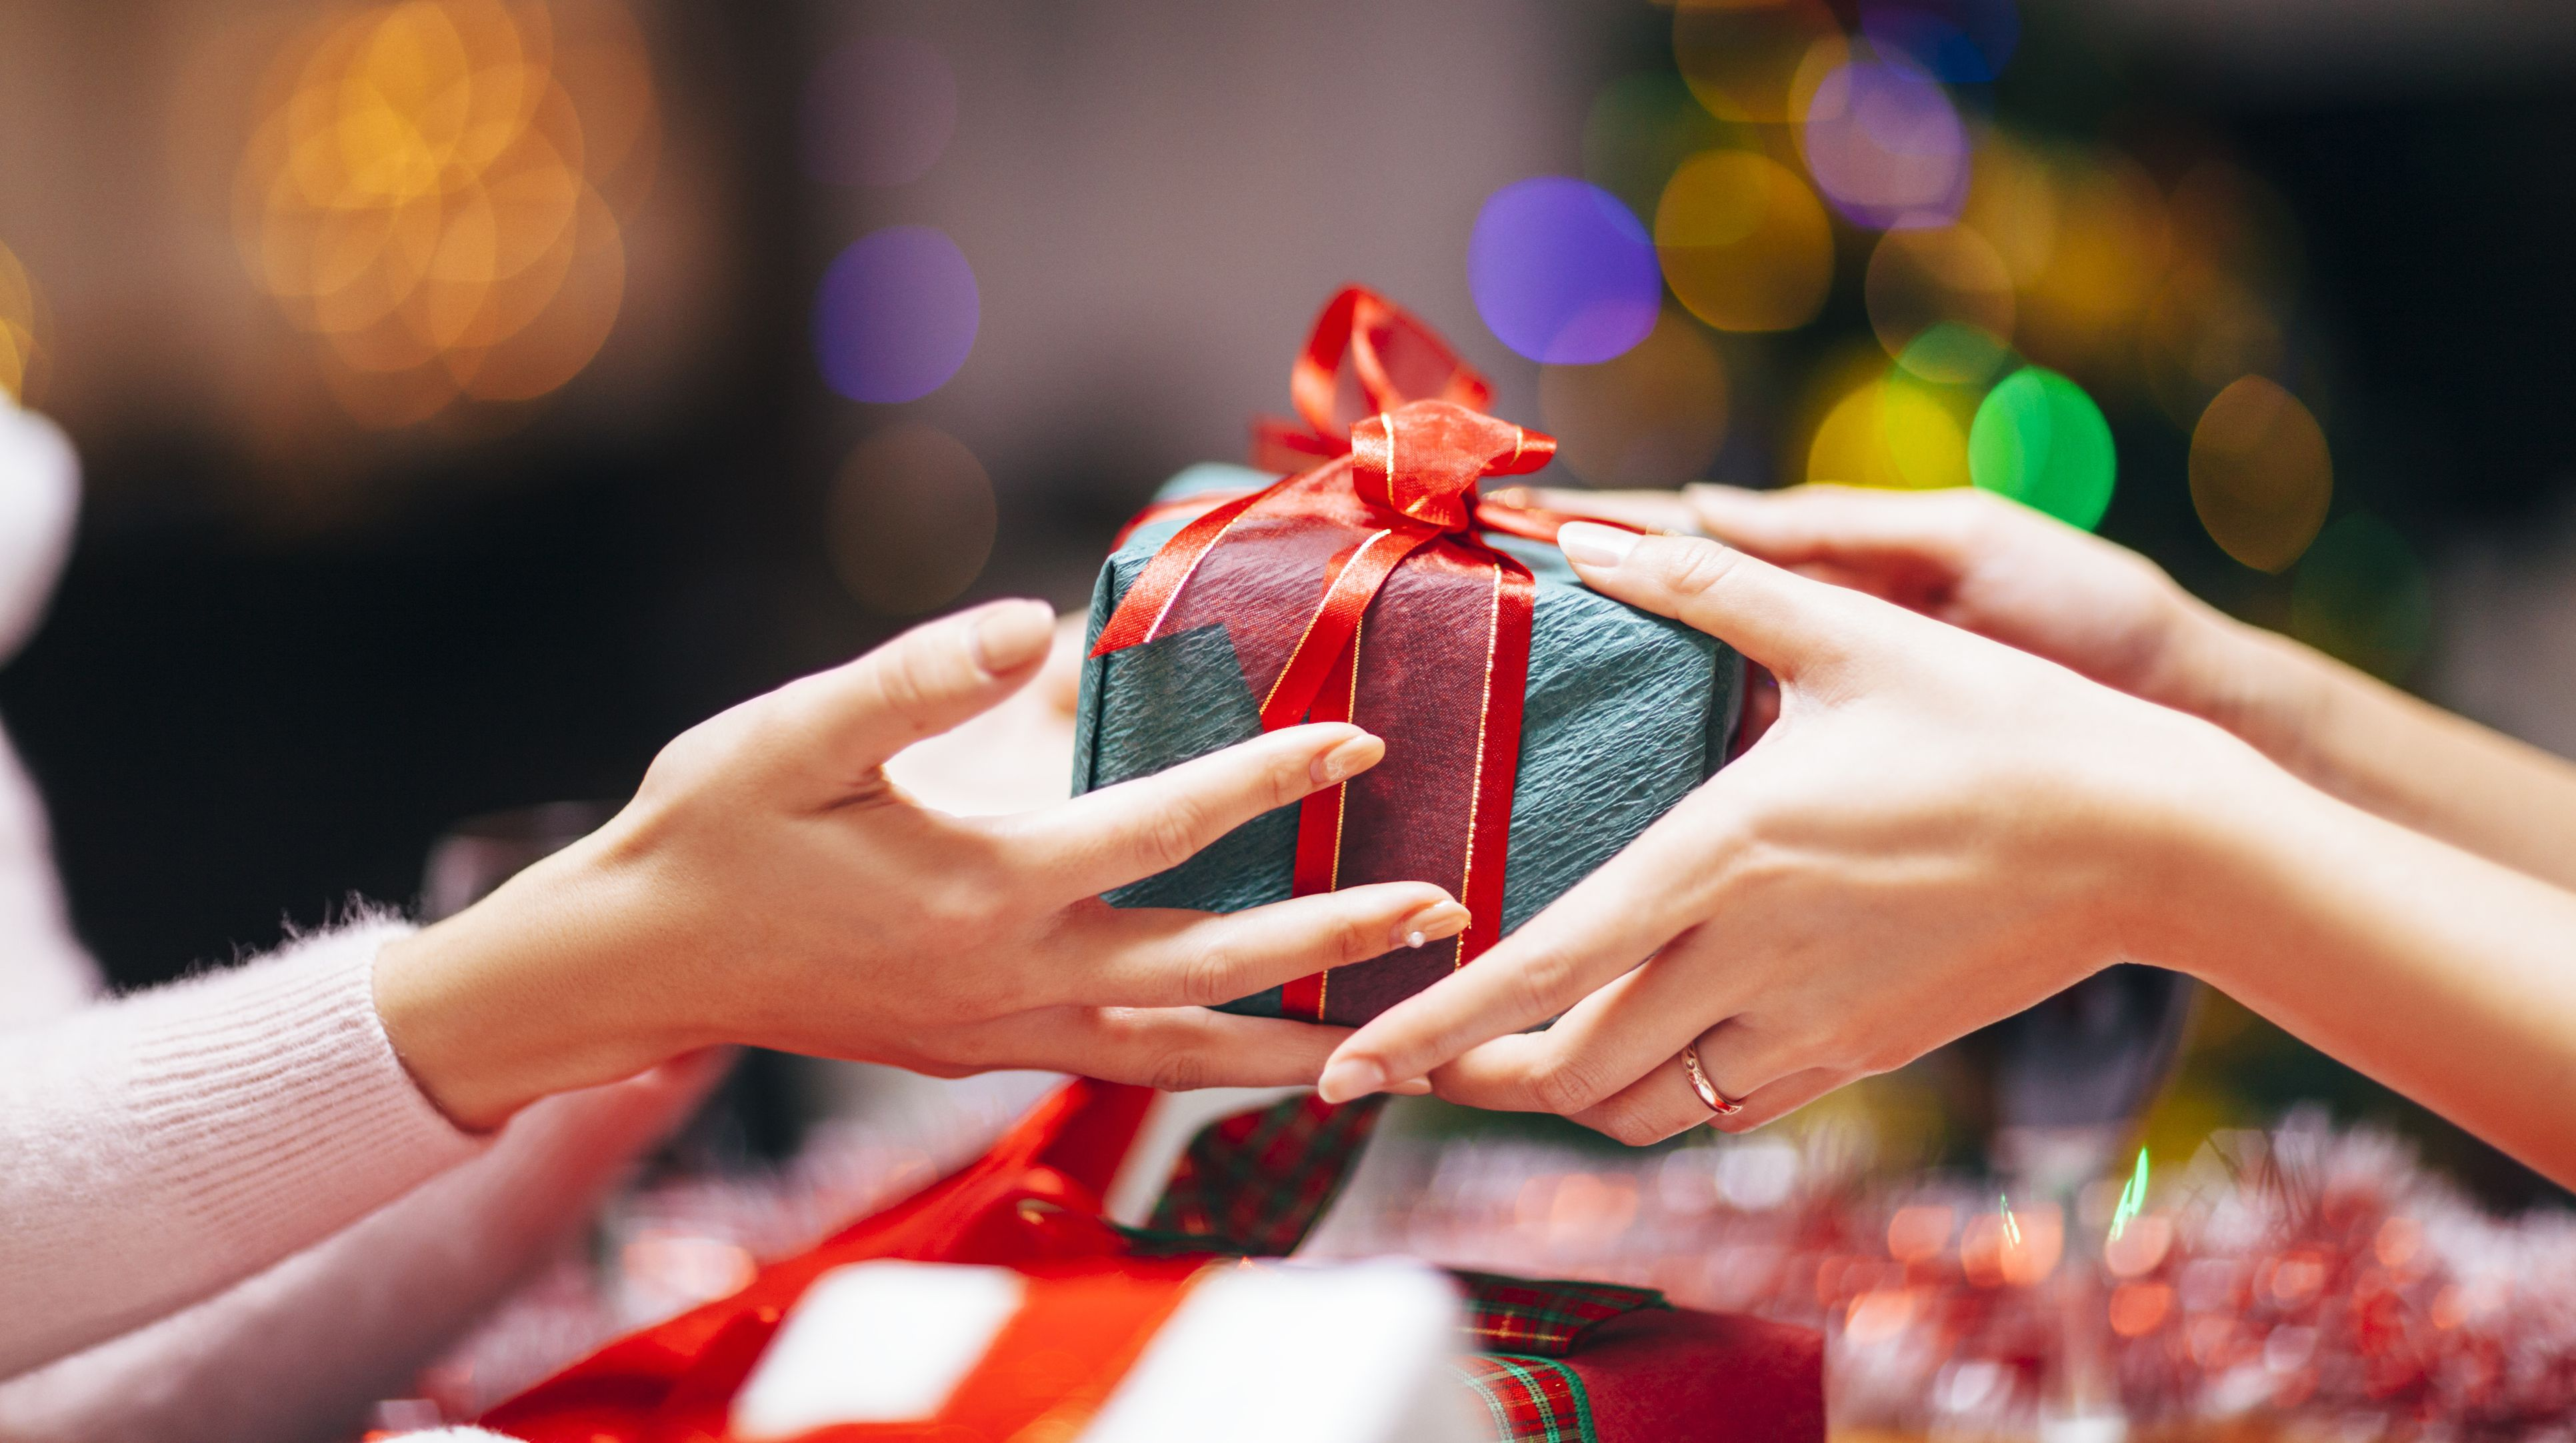 Myths About Gift-Giving You Need to Stop Believing